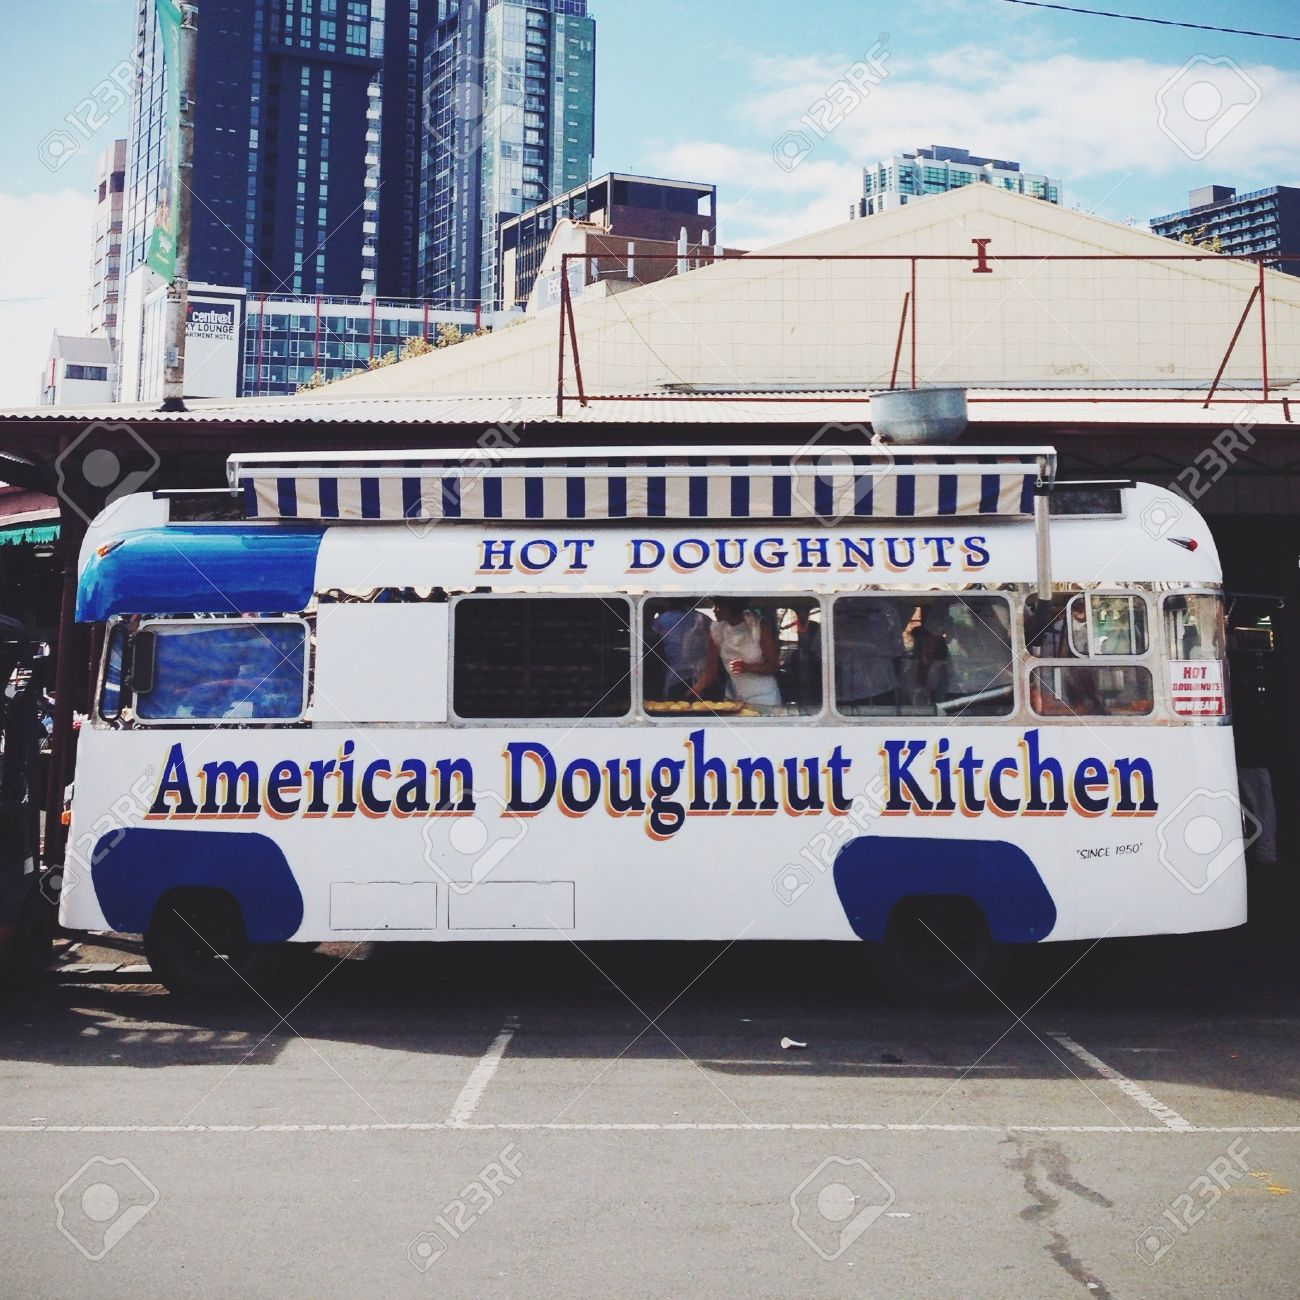 American Doughnut Kitchen At Melbourne Stock Photo, Picture And ...